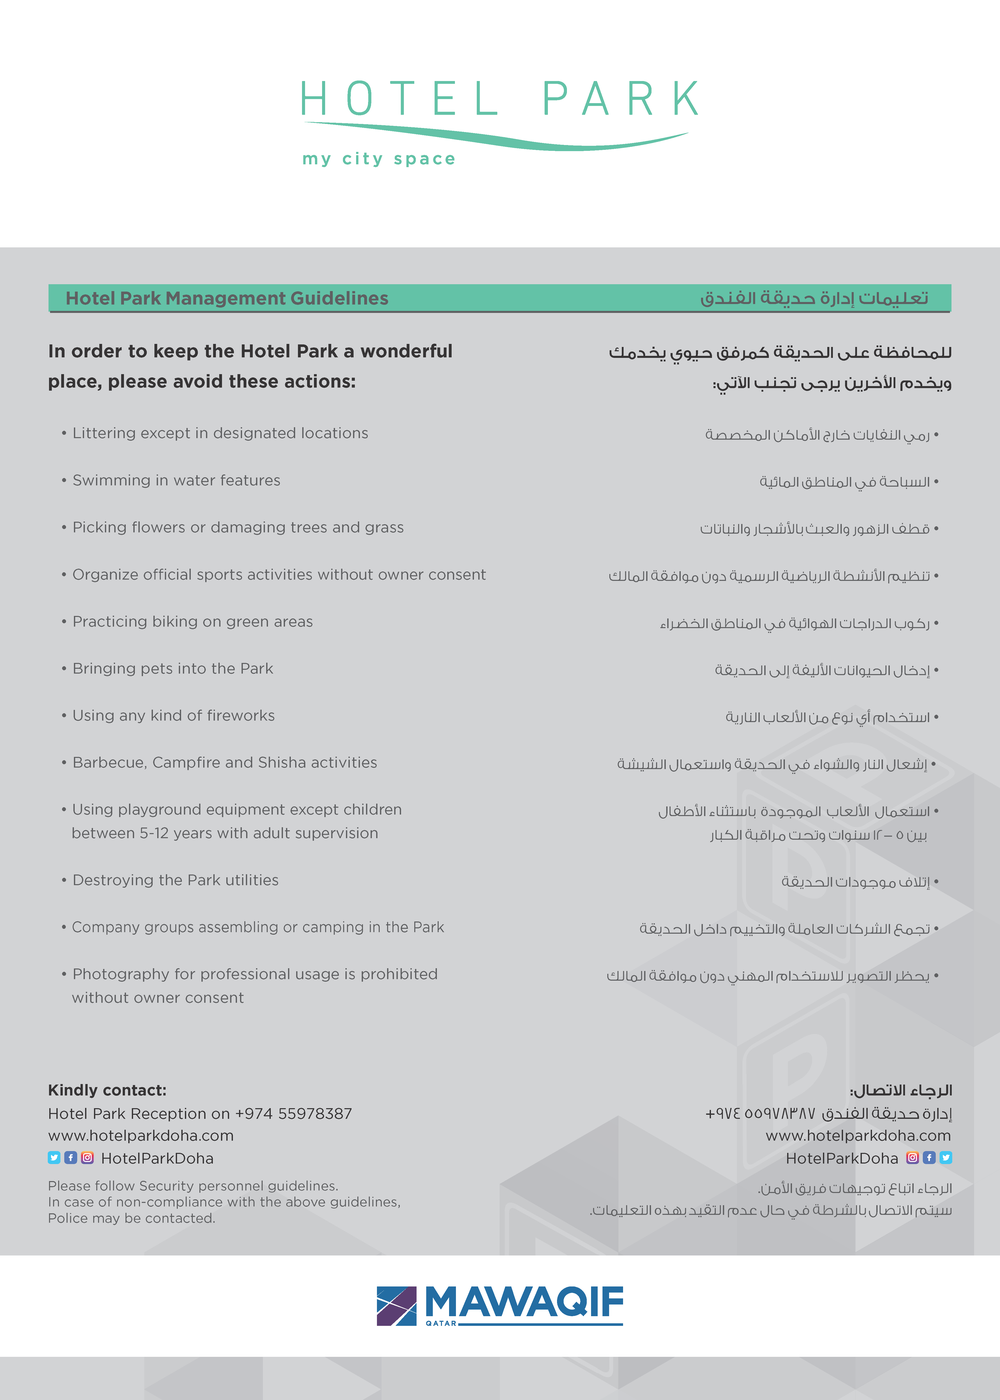 management guidlines poster - revised 50 x 70cm - Revised 1.png